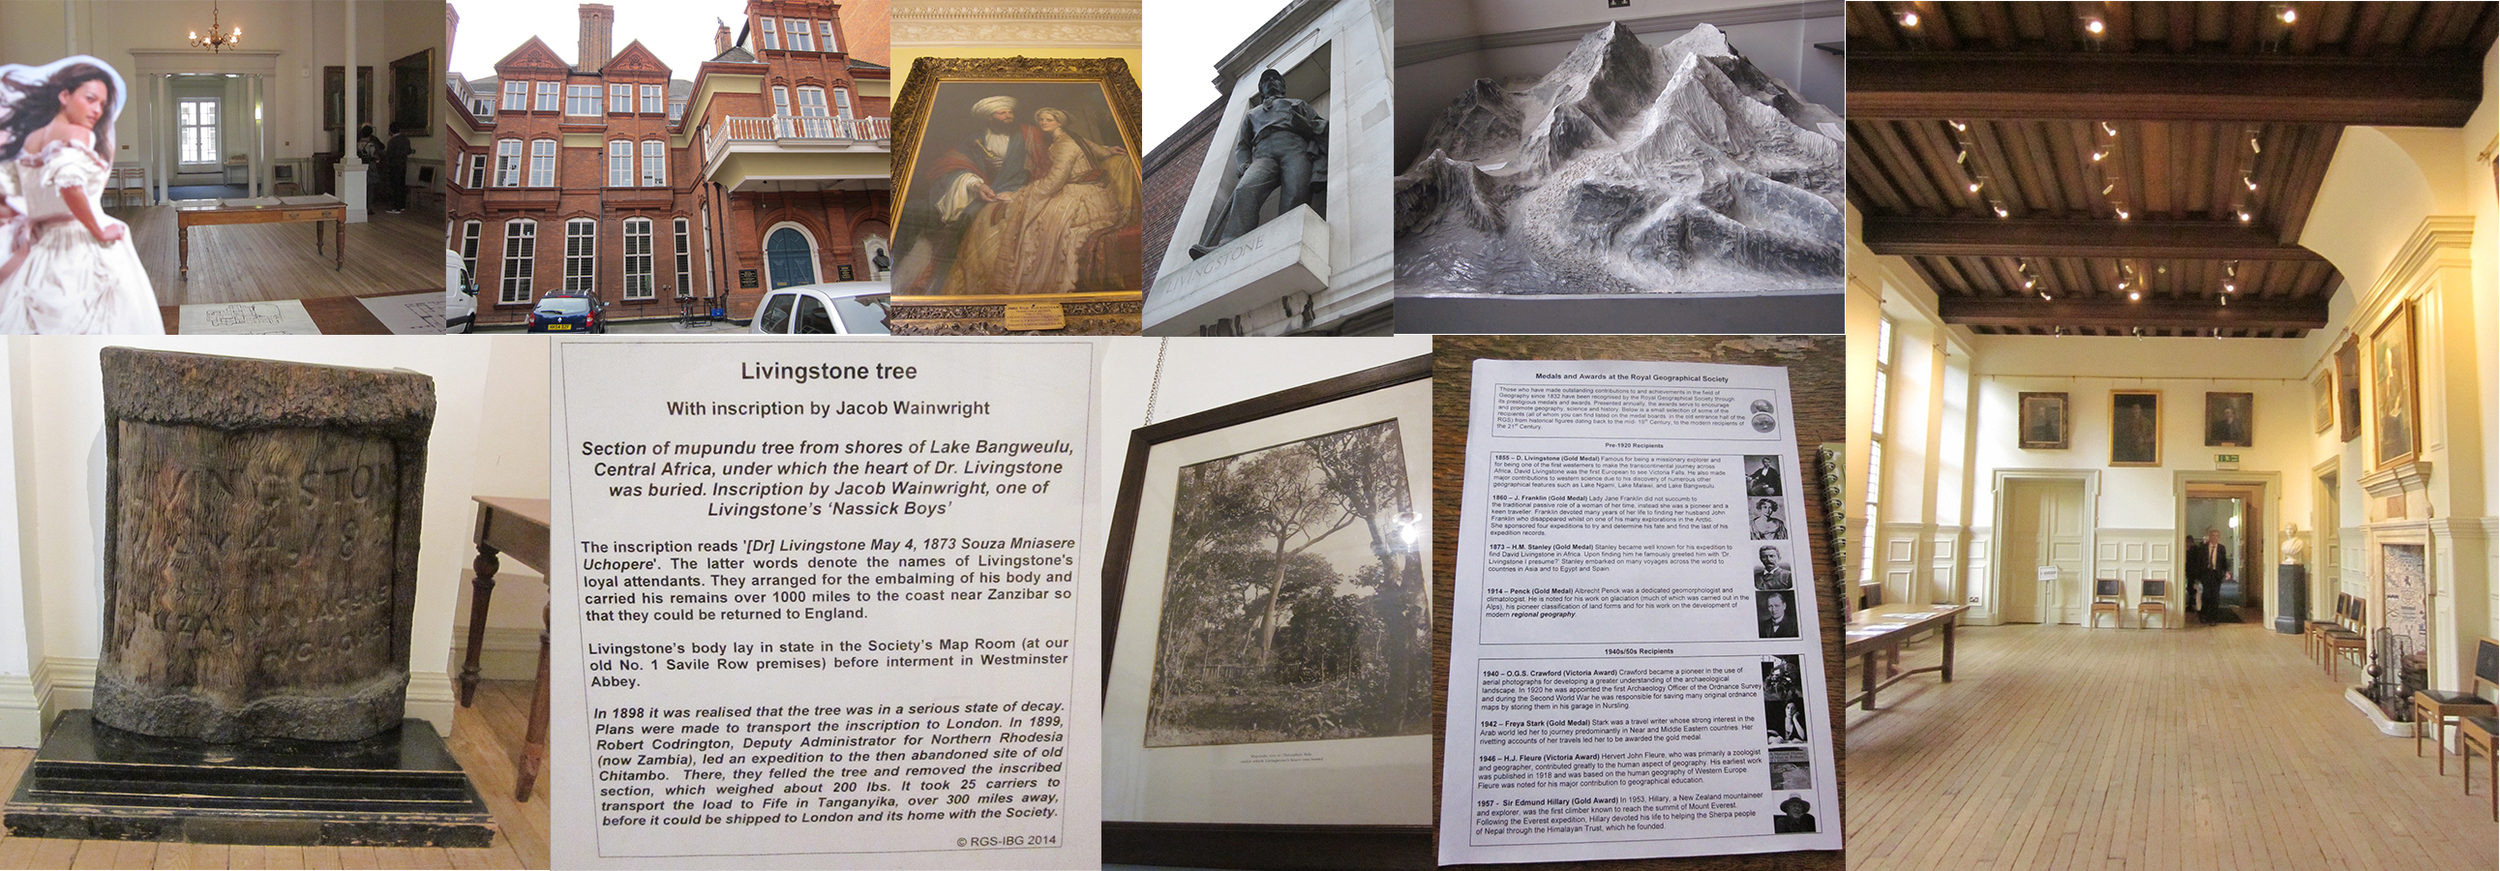 "(L-R, Clockwise: Charlotte finally admitted to the RGS!, Exterior of Lowther Lodge/site of the RGS, James Silk Buckingham, Ext. statue of Livingstone, plaster model of Everest, the main hall of the RGS, former medal recipients, final 3 pictures of the ""Livingstone Tree"""